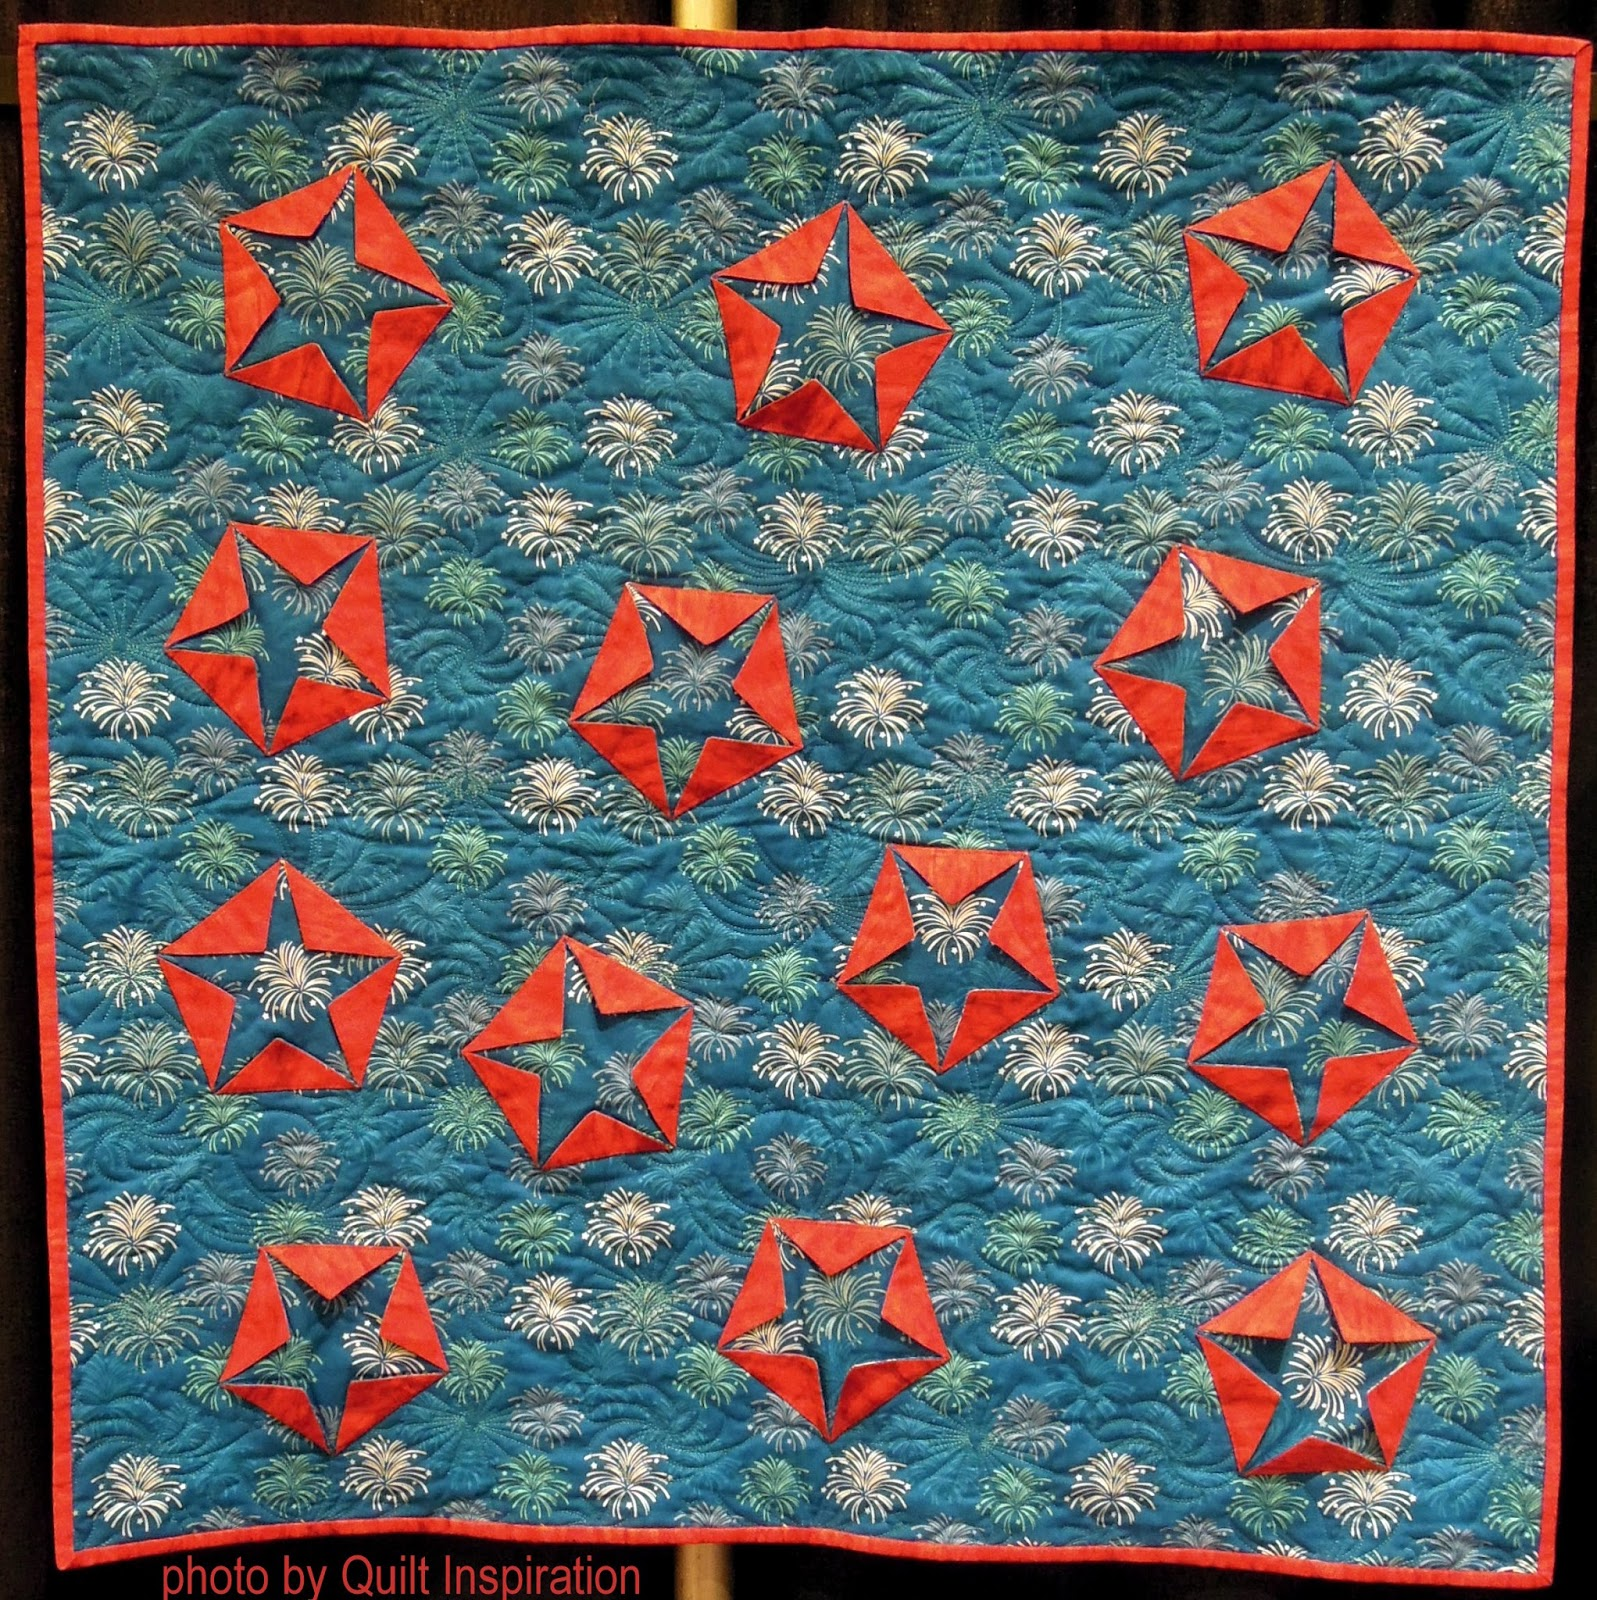 beautiful have house group creativity projects blue quilts it pots few diy i pi my pictured me parties a really diane made just quilt like that anywhere friday and above pins reminds blog the do grandbabies in not